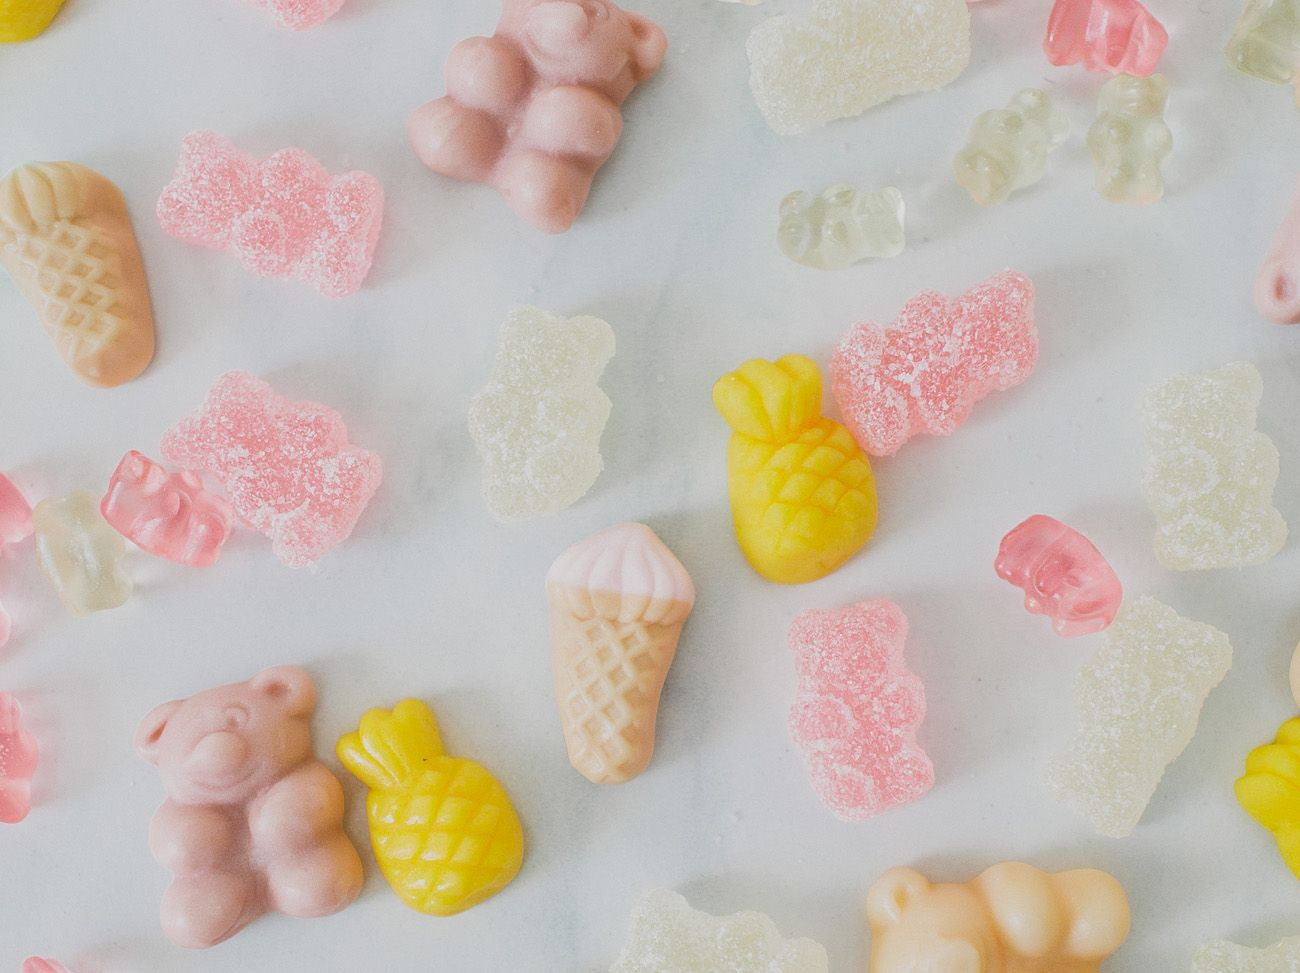 DIY Wedding Favor Candy Boxes | Candies, Candy boxes and DIY wedding